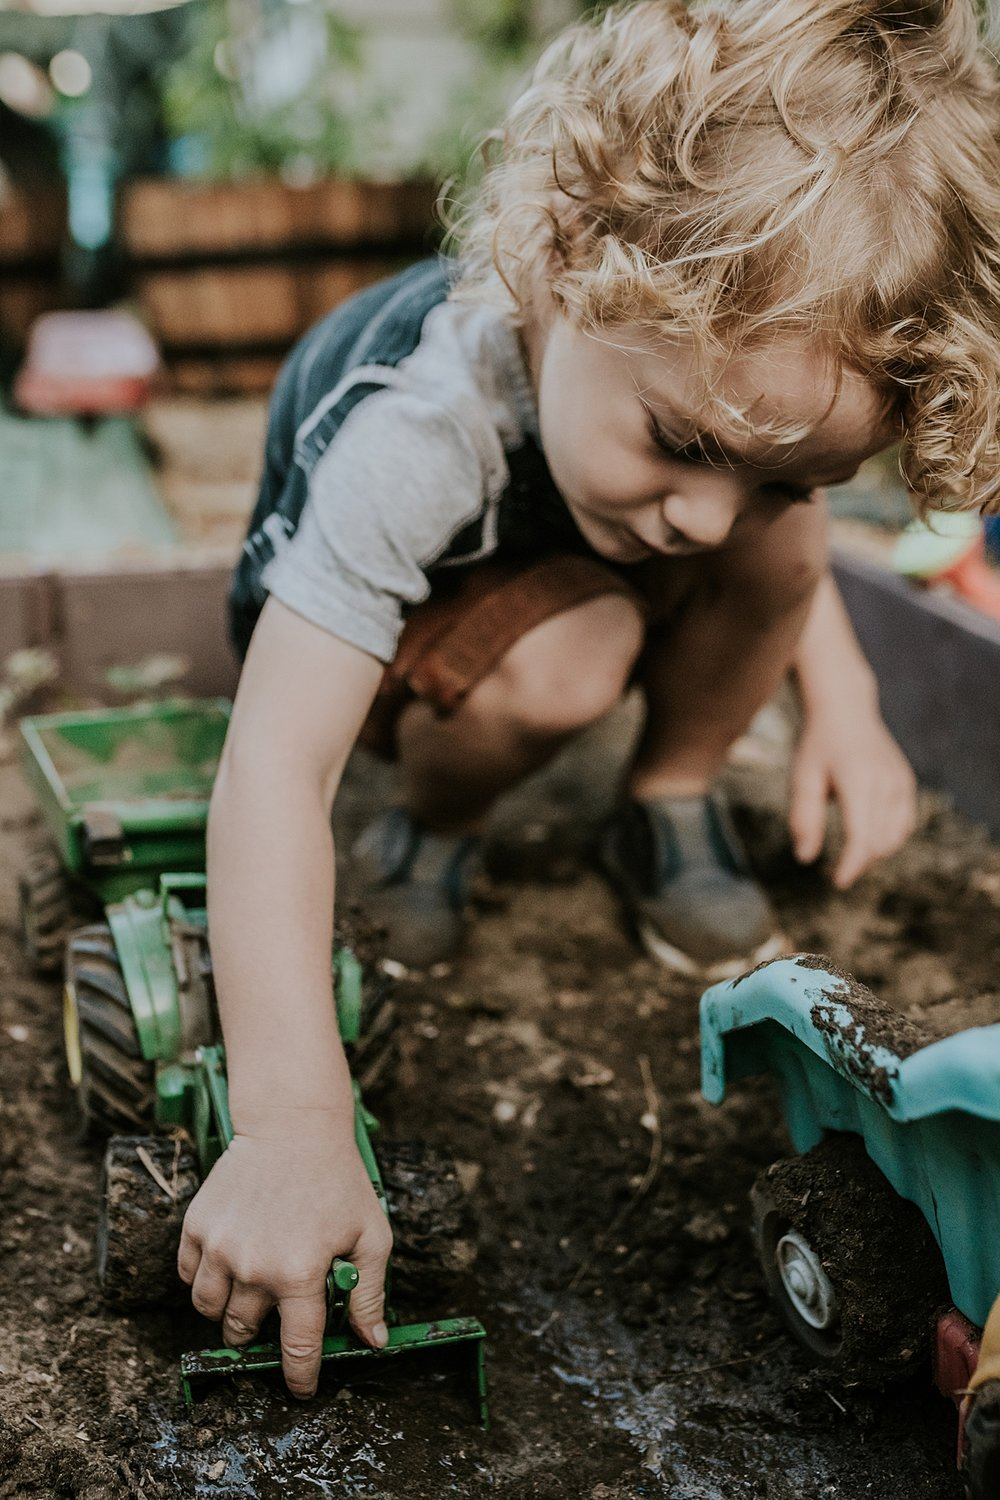 Orange County family photographer. Photo of young curly blonde haired boy playing with his trucks in his front yard garden during documentary photo session with Krystil McDowall Photography